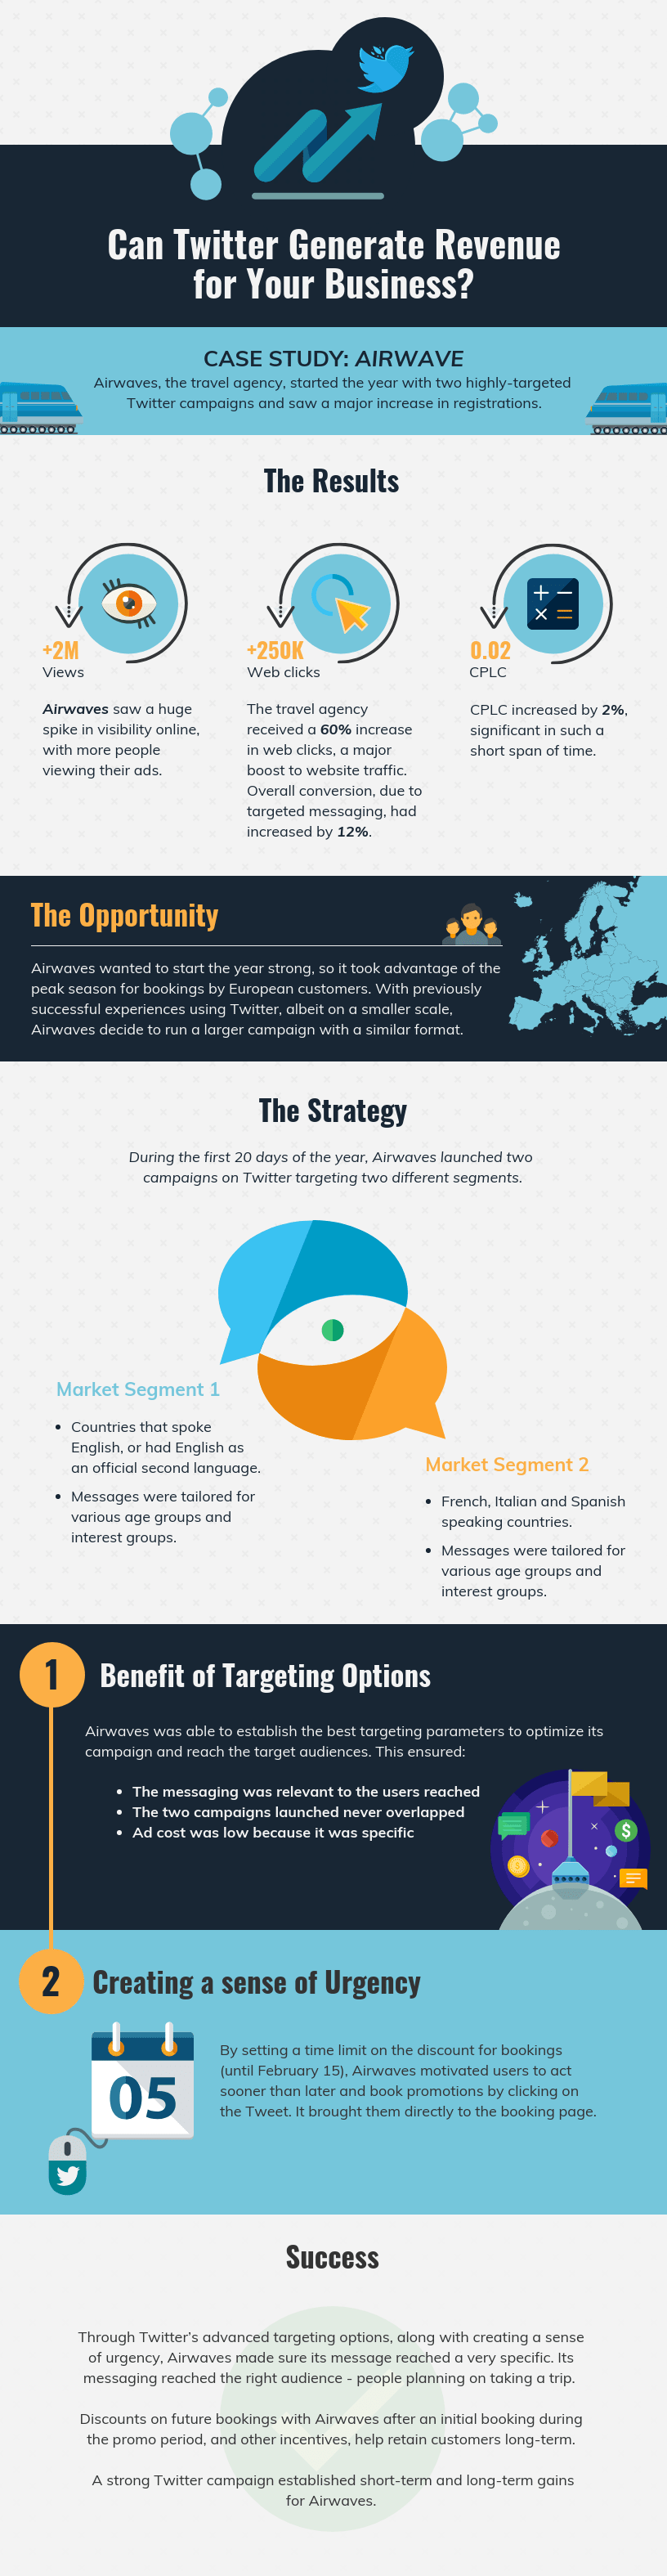 twitter case study infographic template